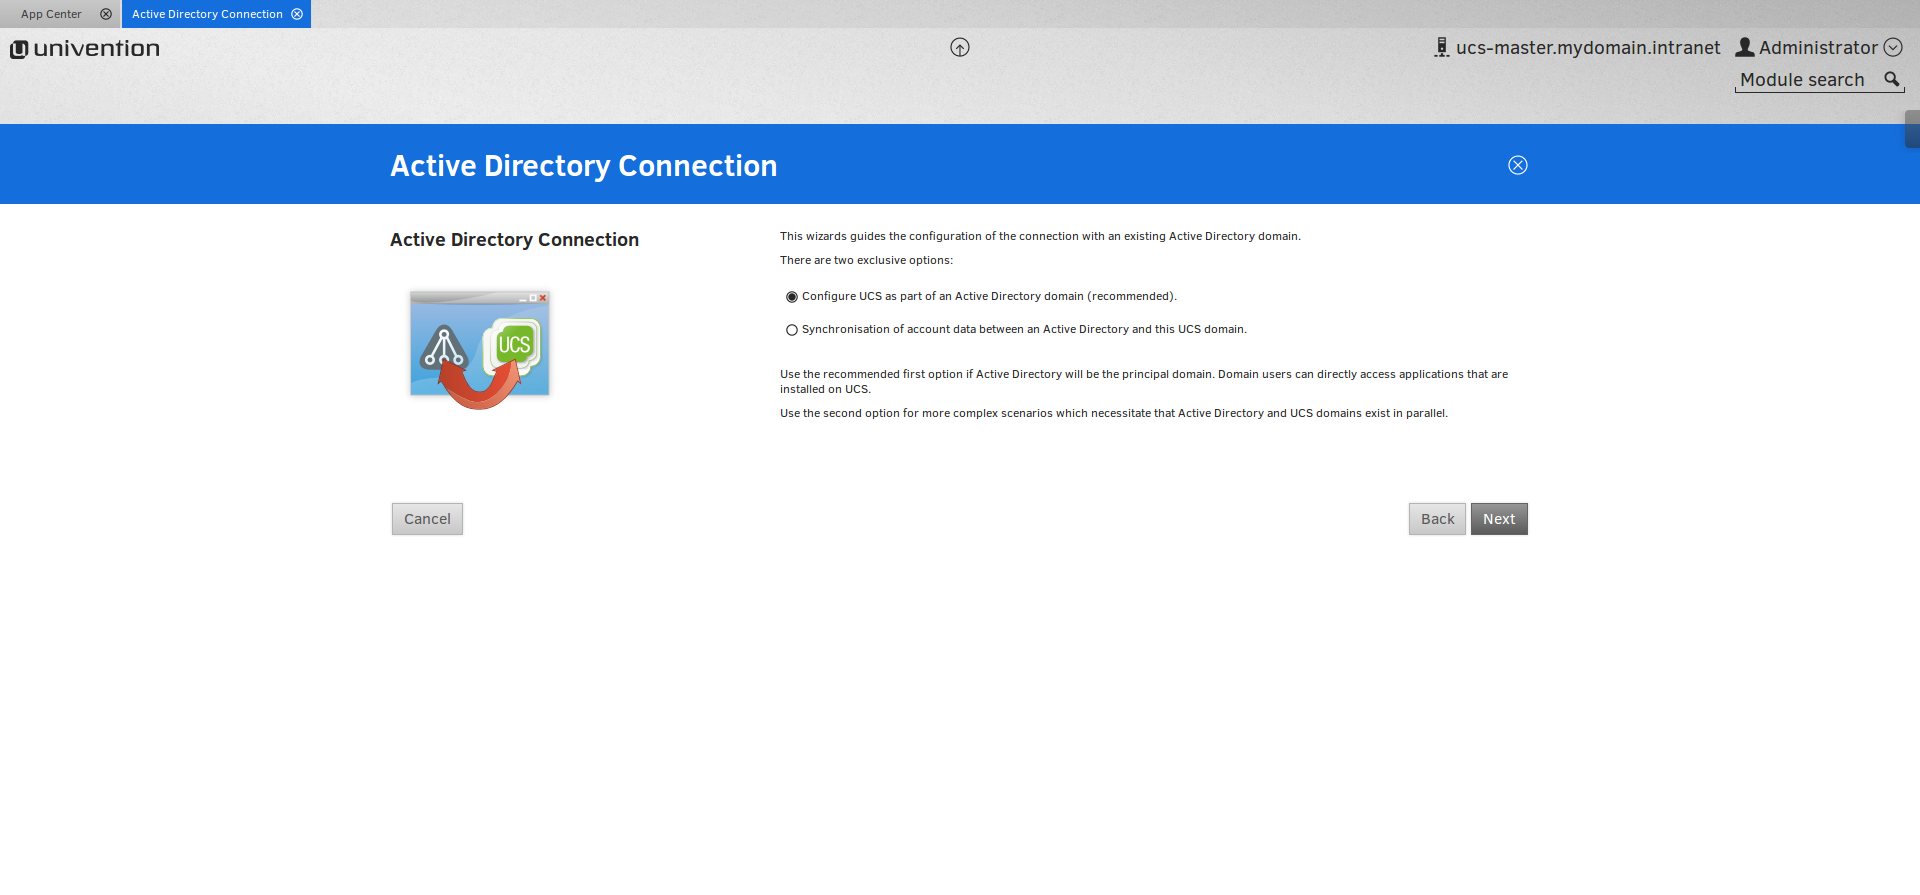 Active Directory Connection